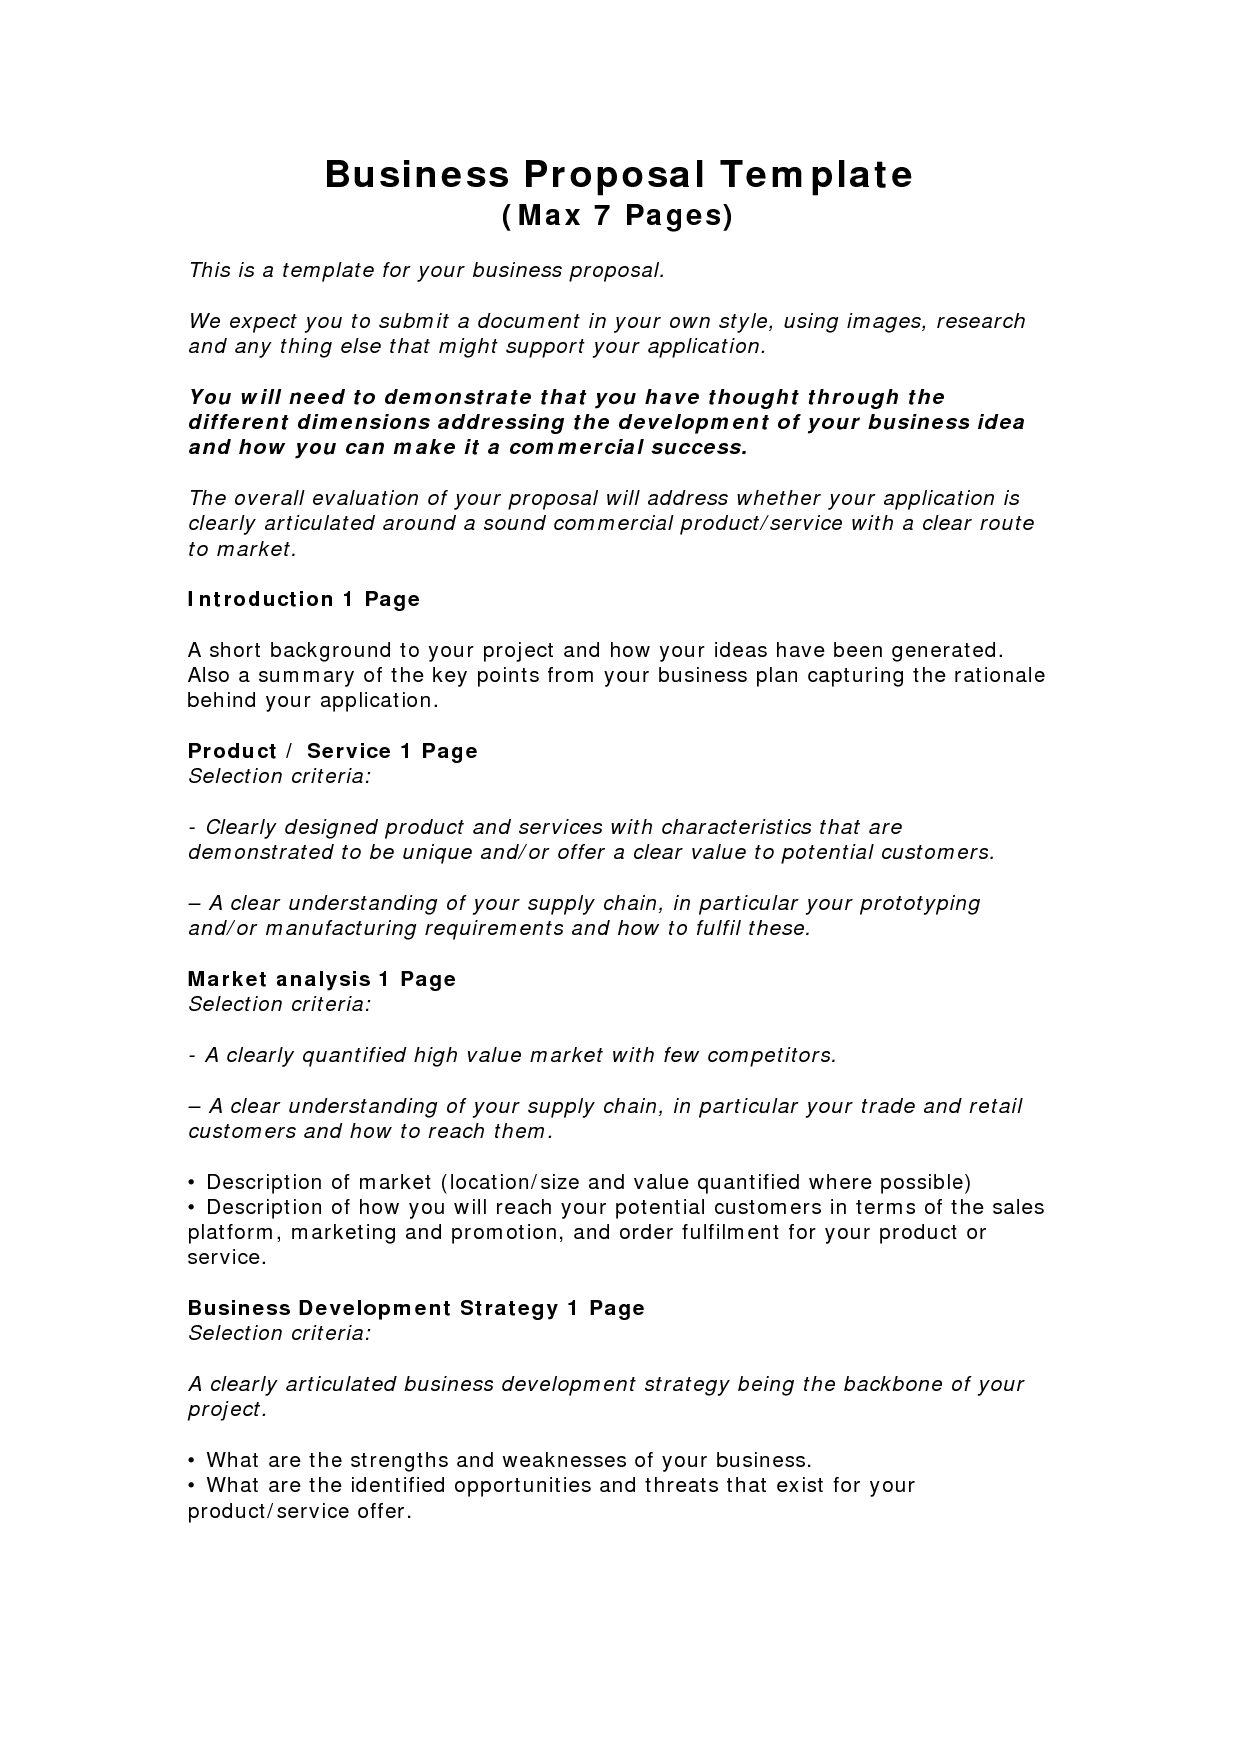 Business Proposal Templates Examples Business Proposal Template - Simple business plan outline template